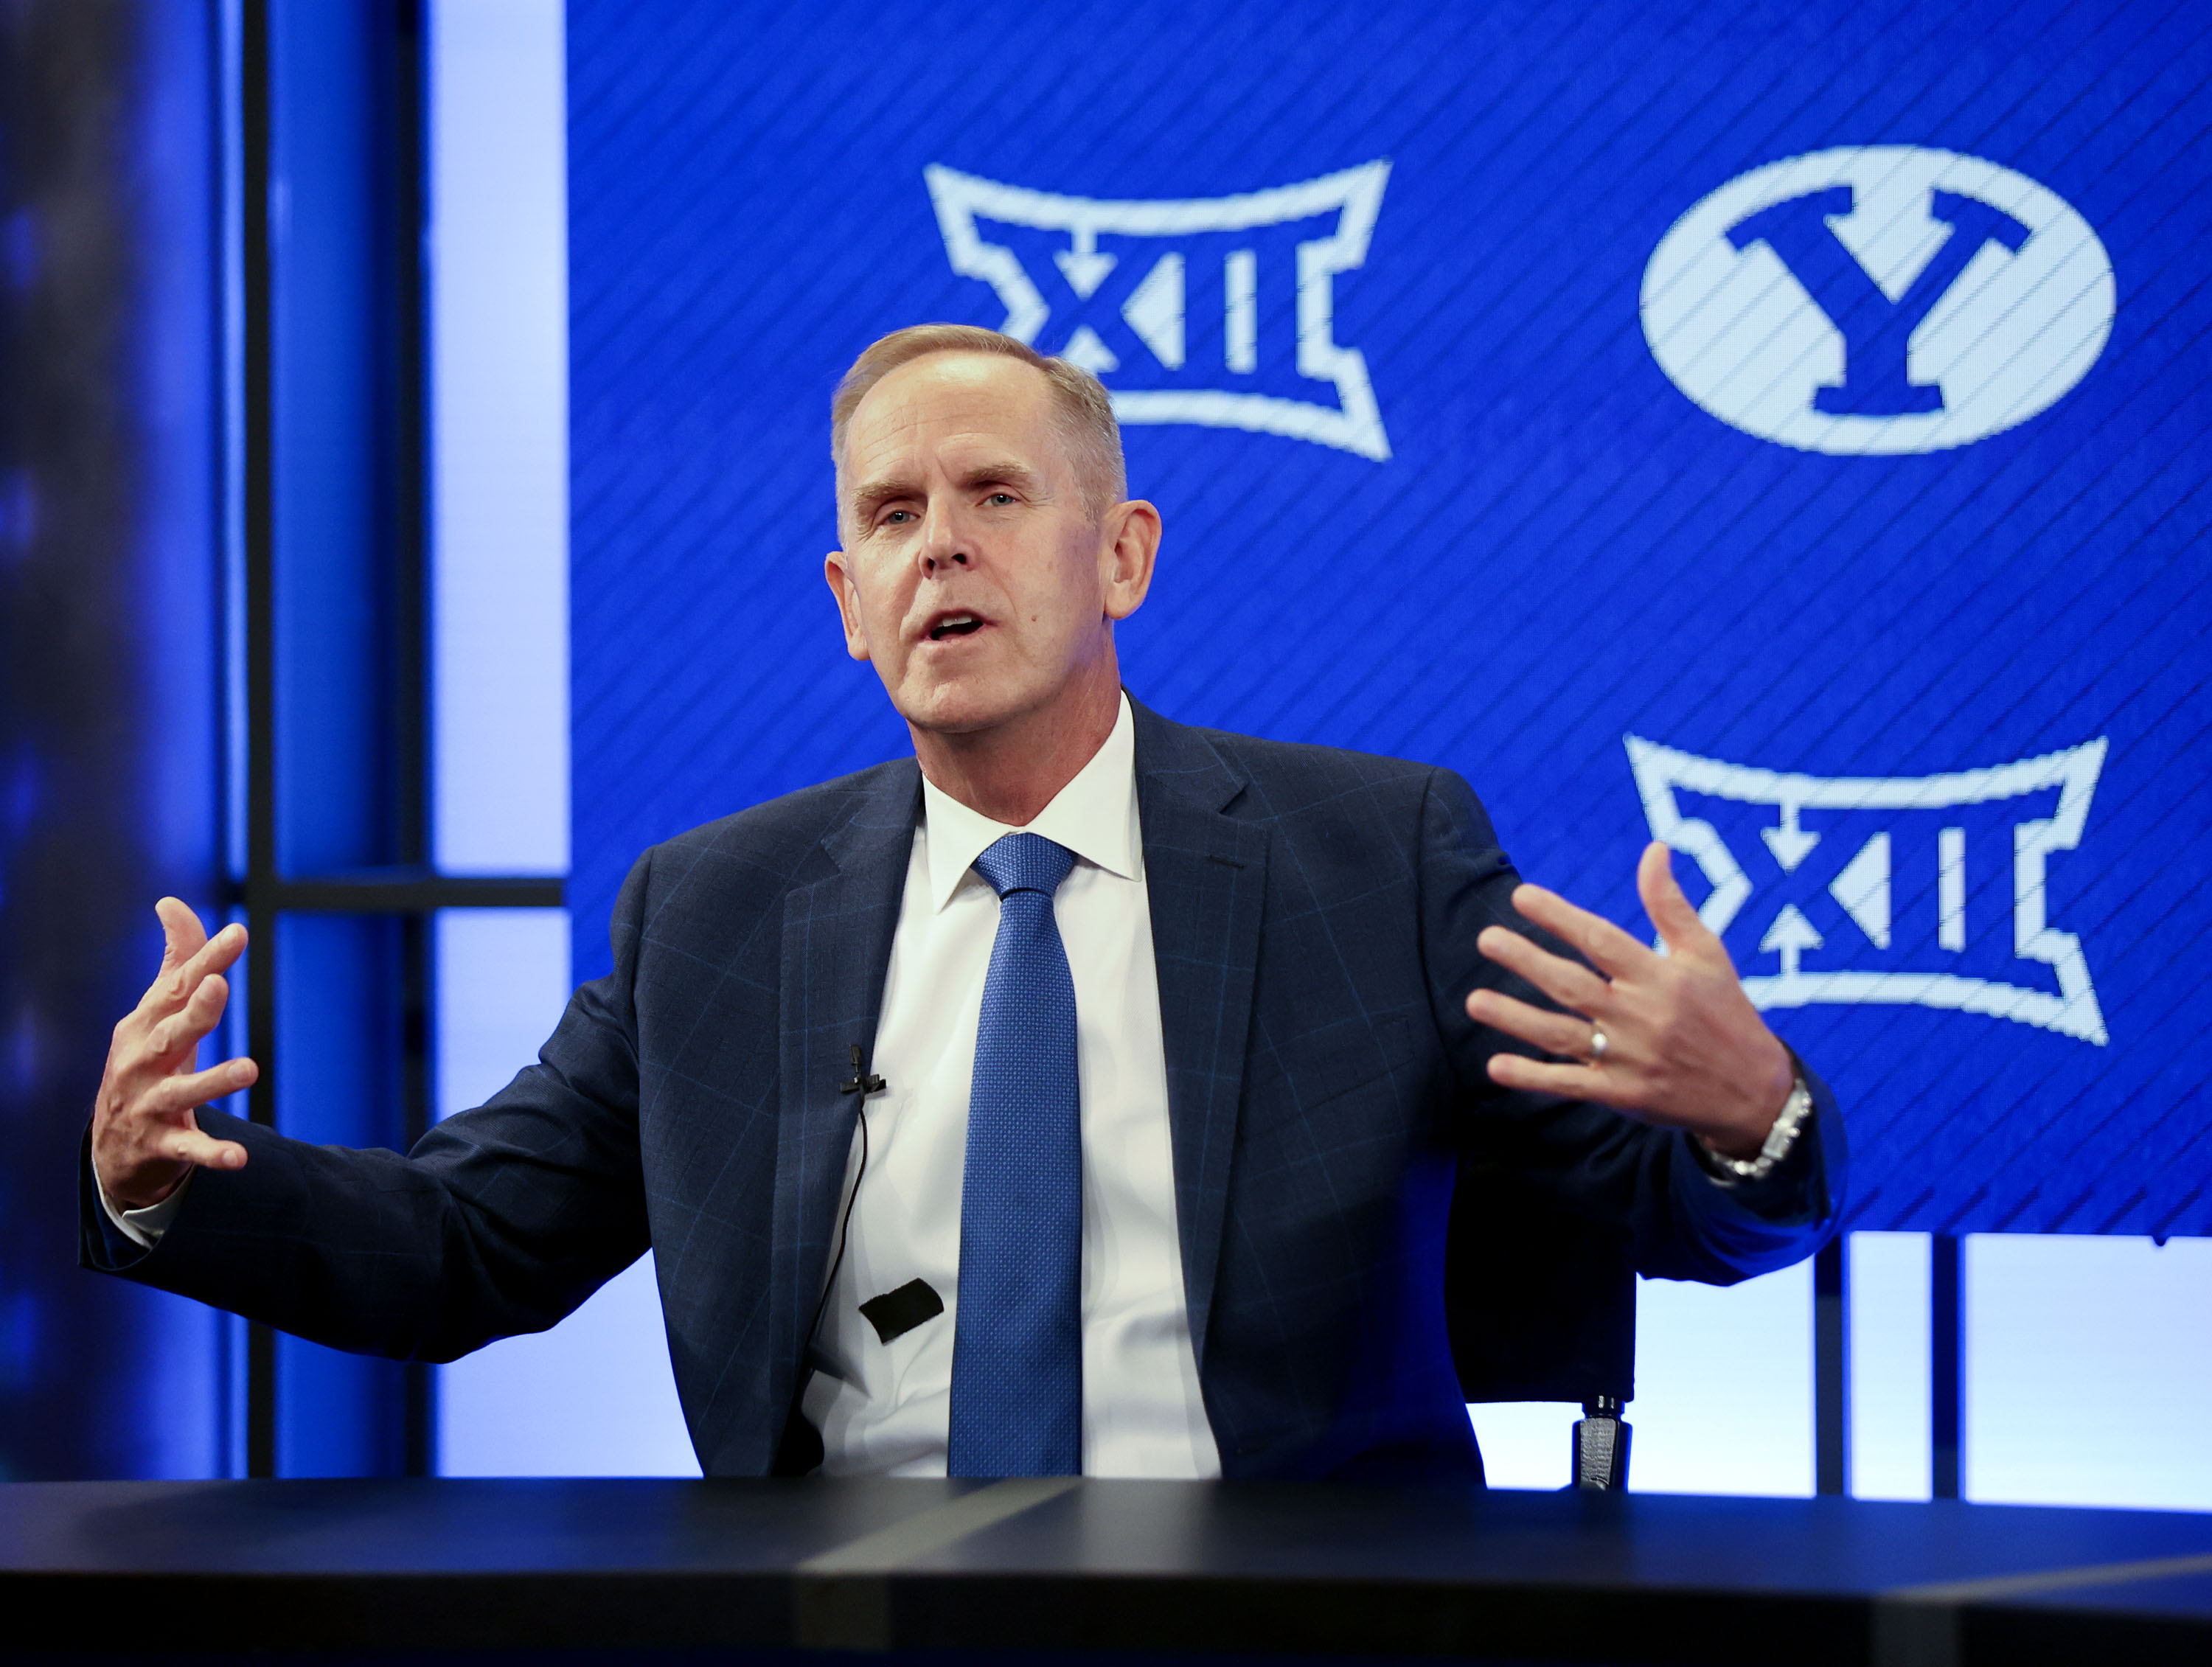 BYU athletic director Tom Holmoe gestures while announcing that BYU has accepted an invitation to the Big 12 Conference.